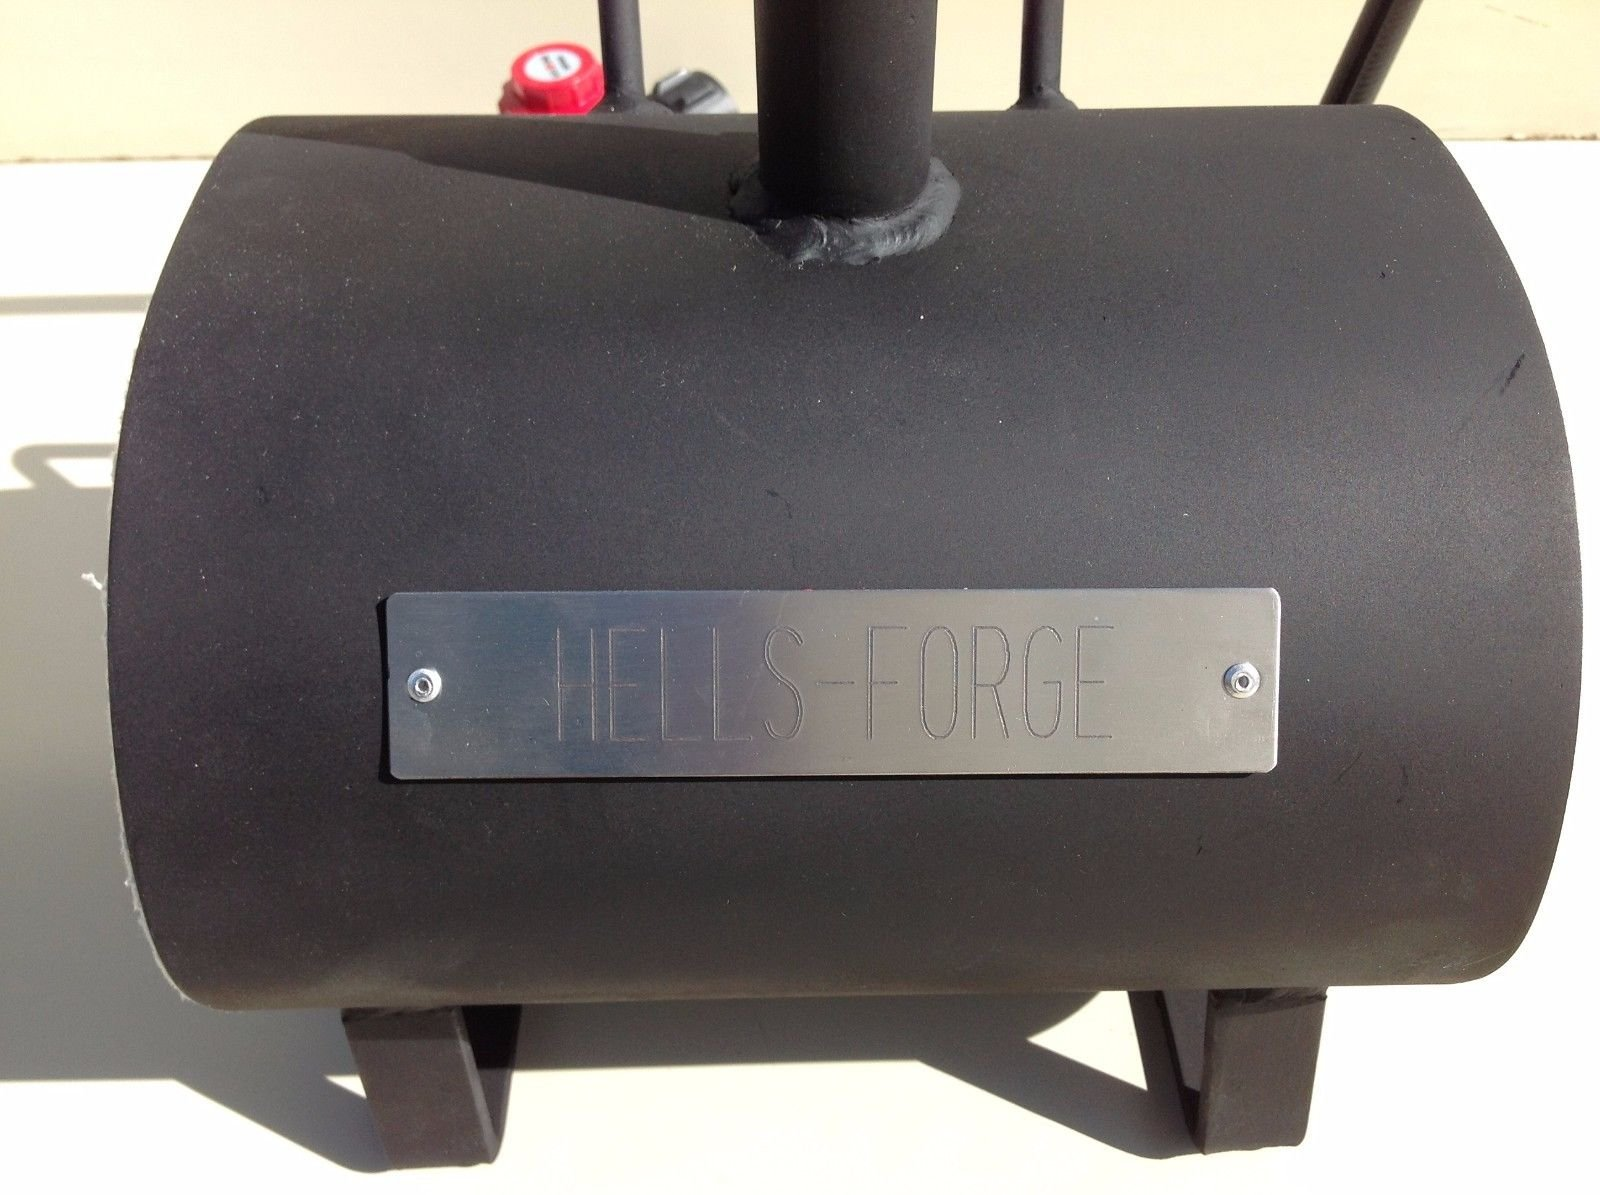 Hell's Forge Portable Propane Forge Single Burner Knife and Tool Making Farrier Forge MADE IN THE USA by Hell's Forge (Image #2)